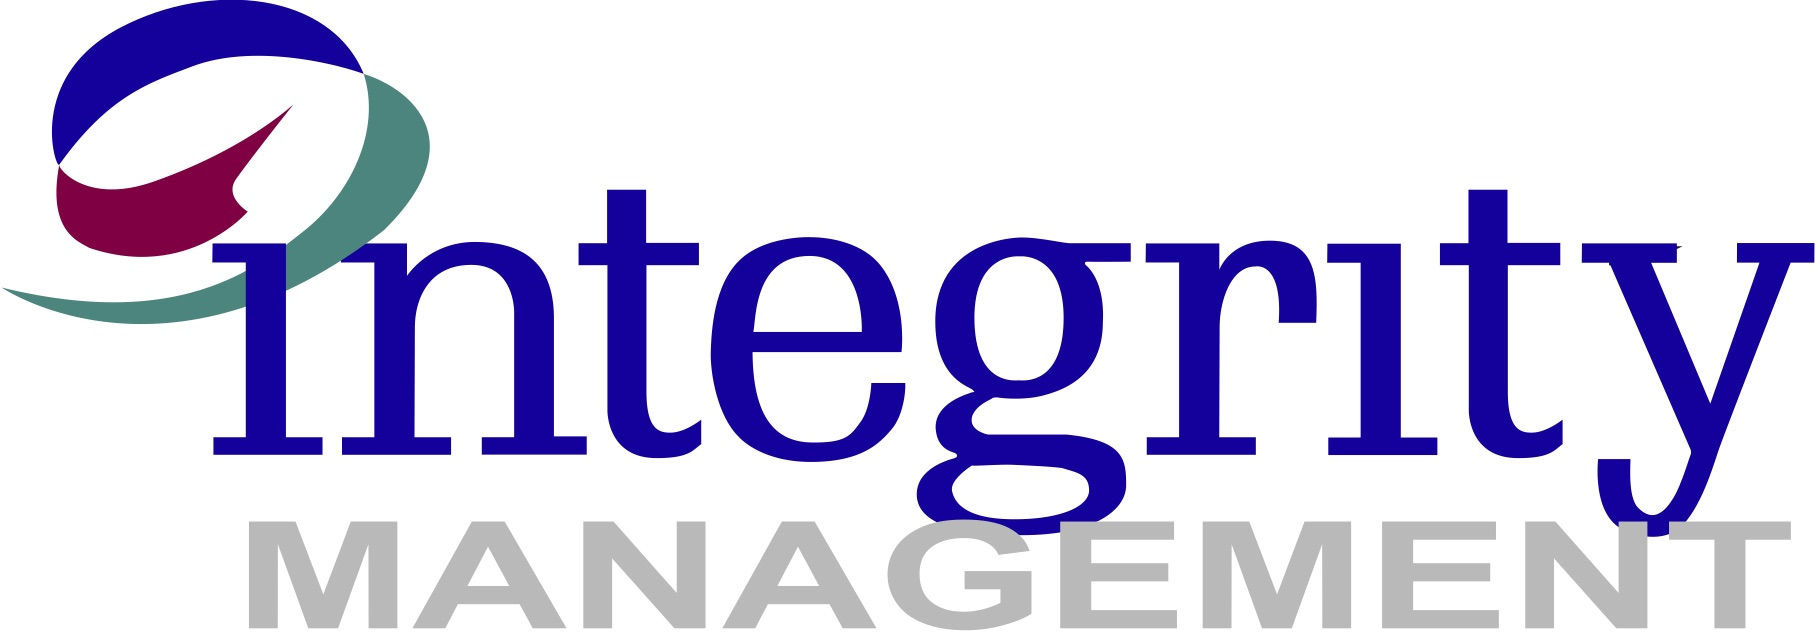 Integritymanagement Logo.jpg